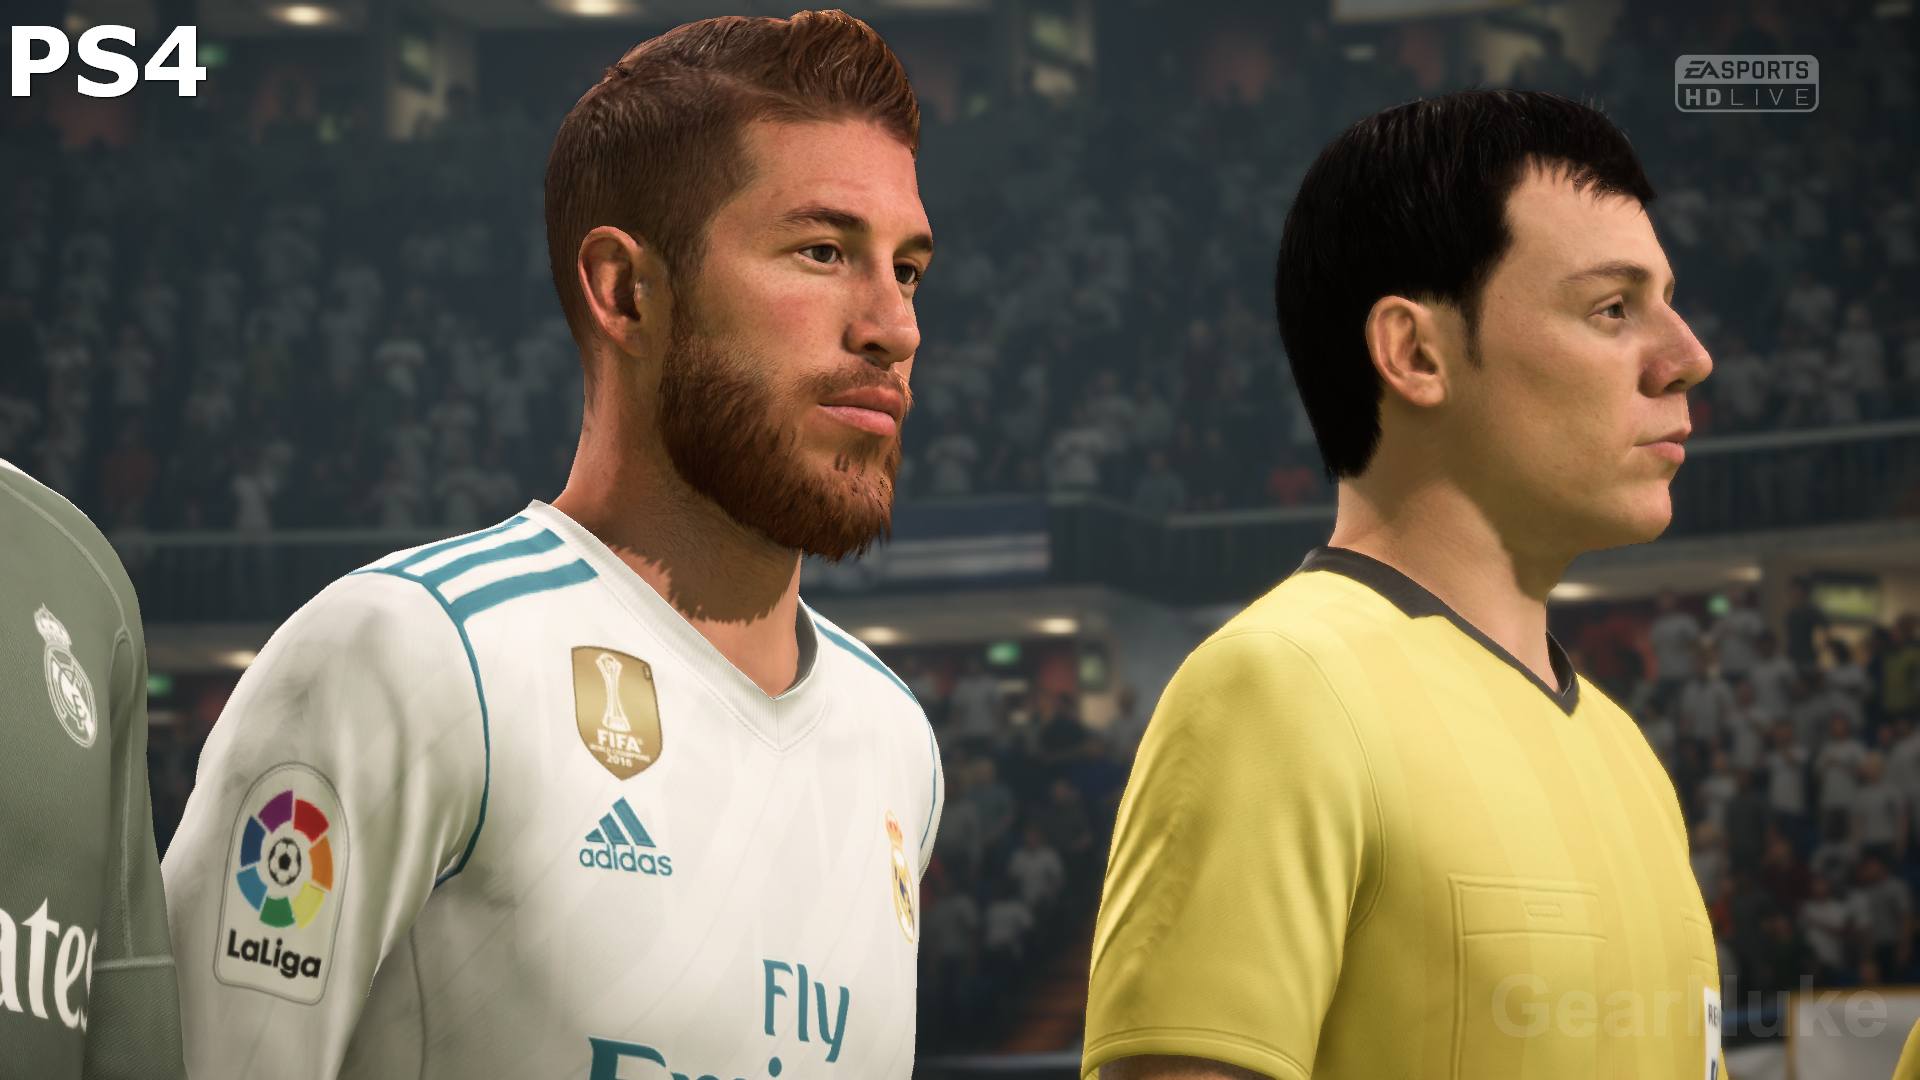 FIFA 18 Appears To Render At 4K Resolution On The PS4 Pro But It Is Hard Determine Whether Checkerboard Rendering Or Native